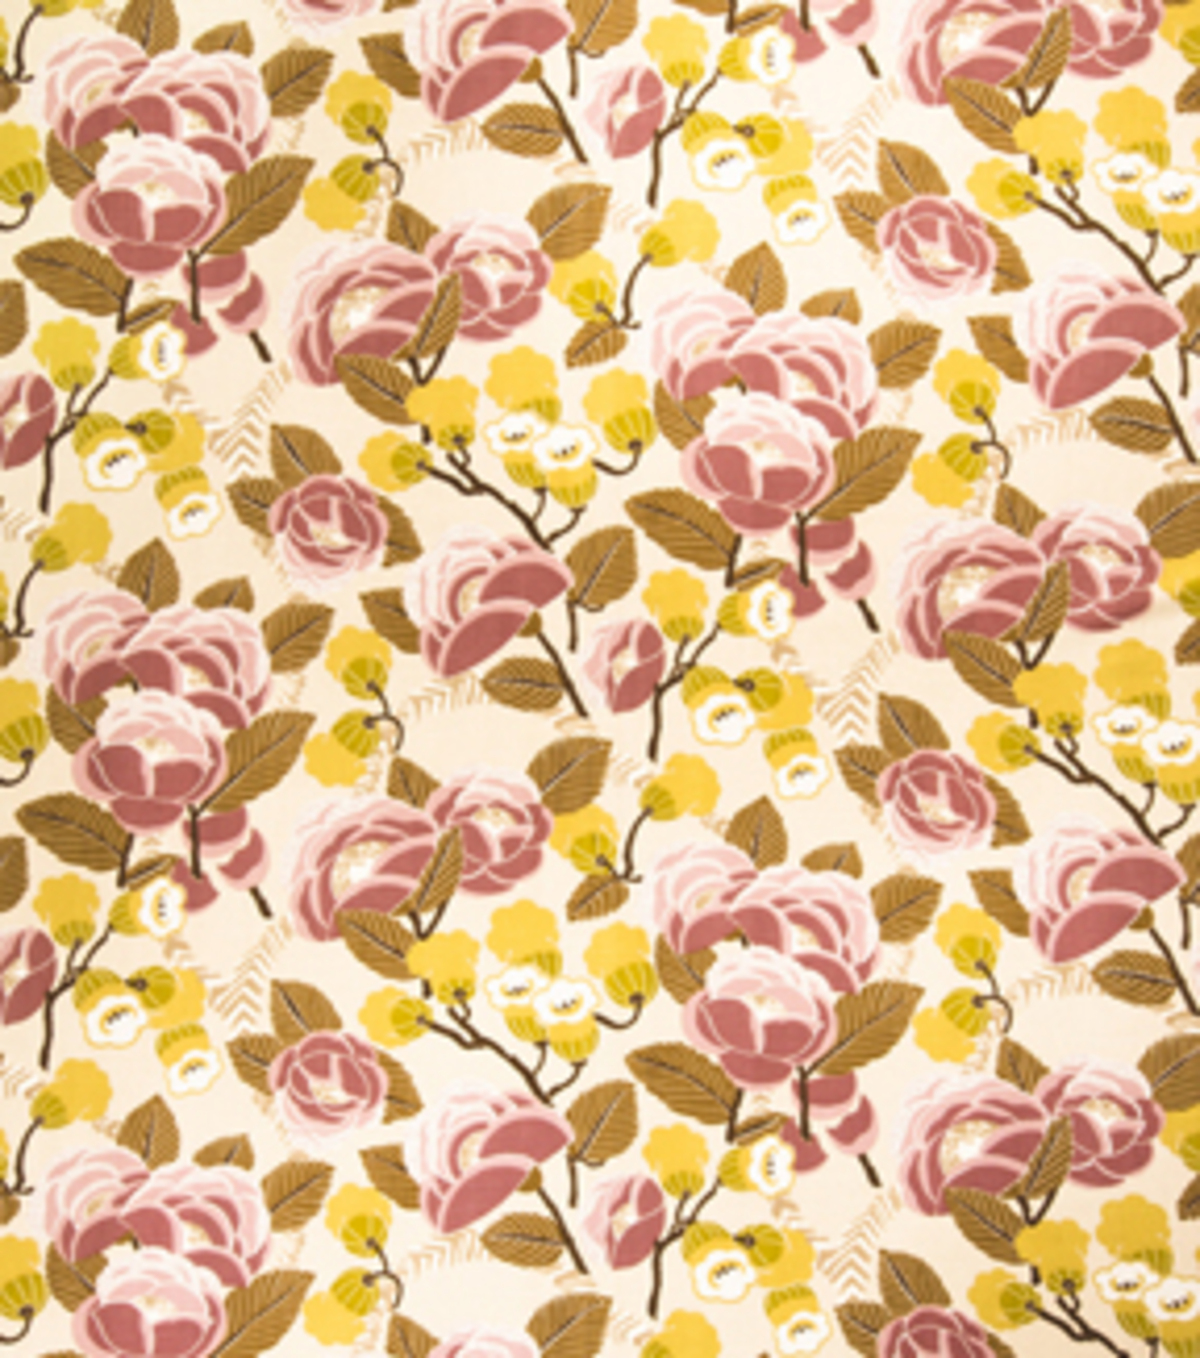 Home Decor 8\u0022x8\u0022 Fabric Swatch-Upholstery Fabric Eaton Square Combine Dusk